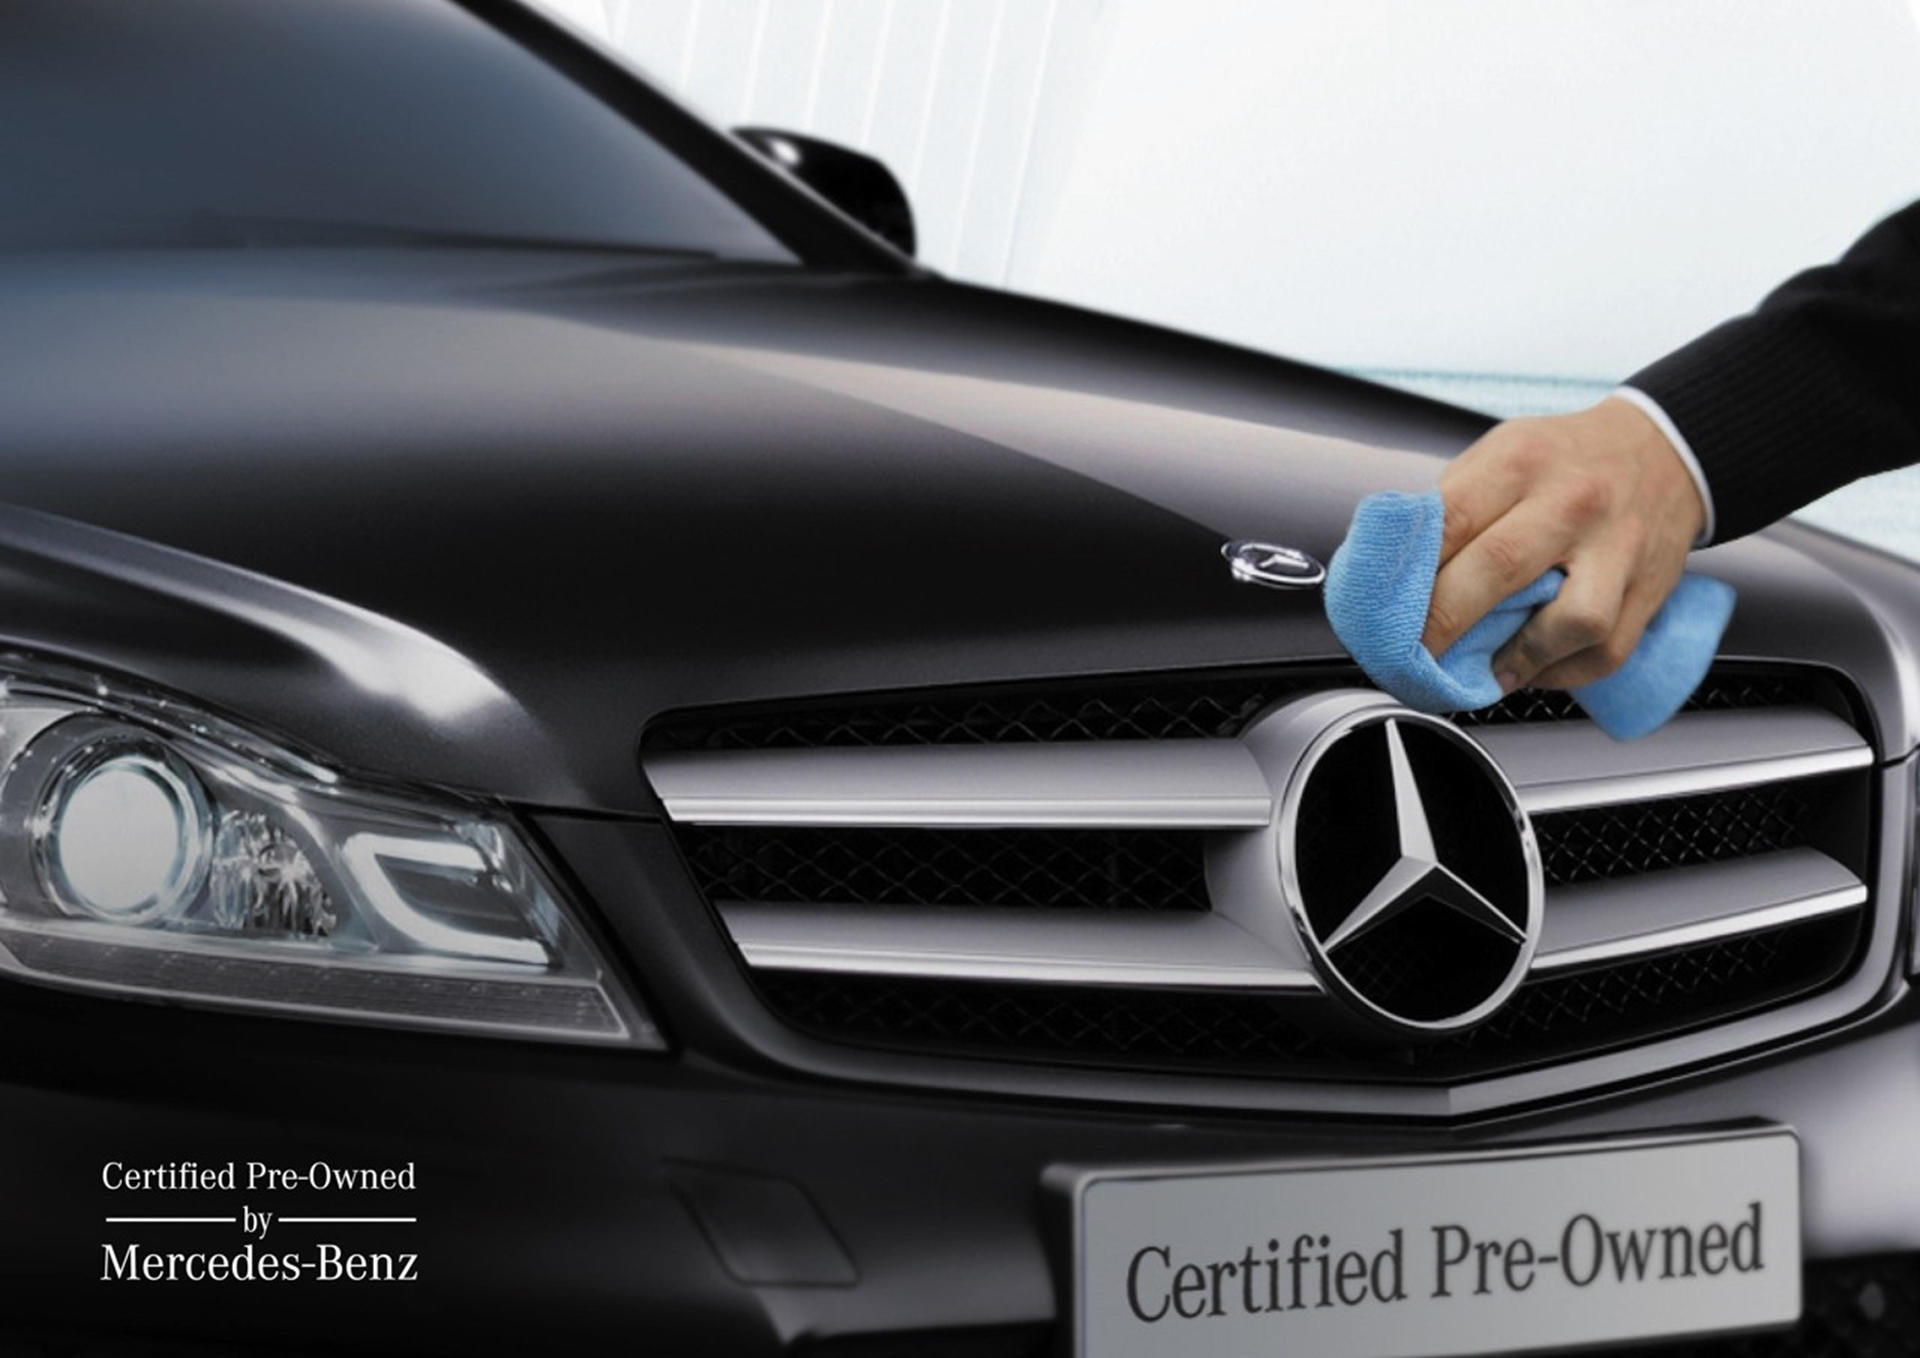 Mercedes Benz Certified Pre Owned Guarantees Peace Of Mind